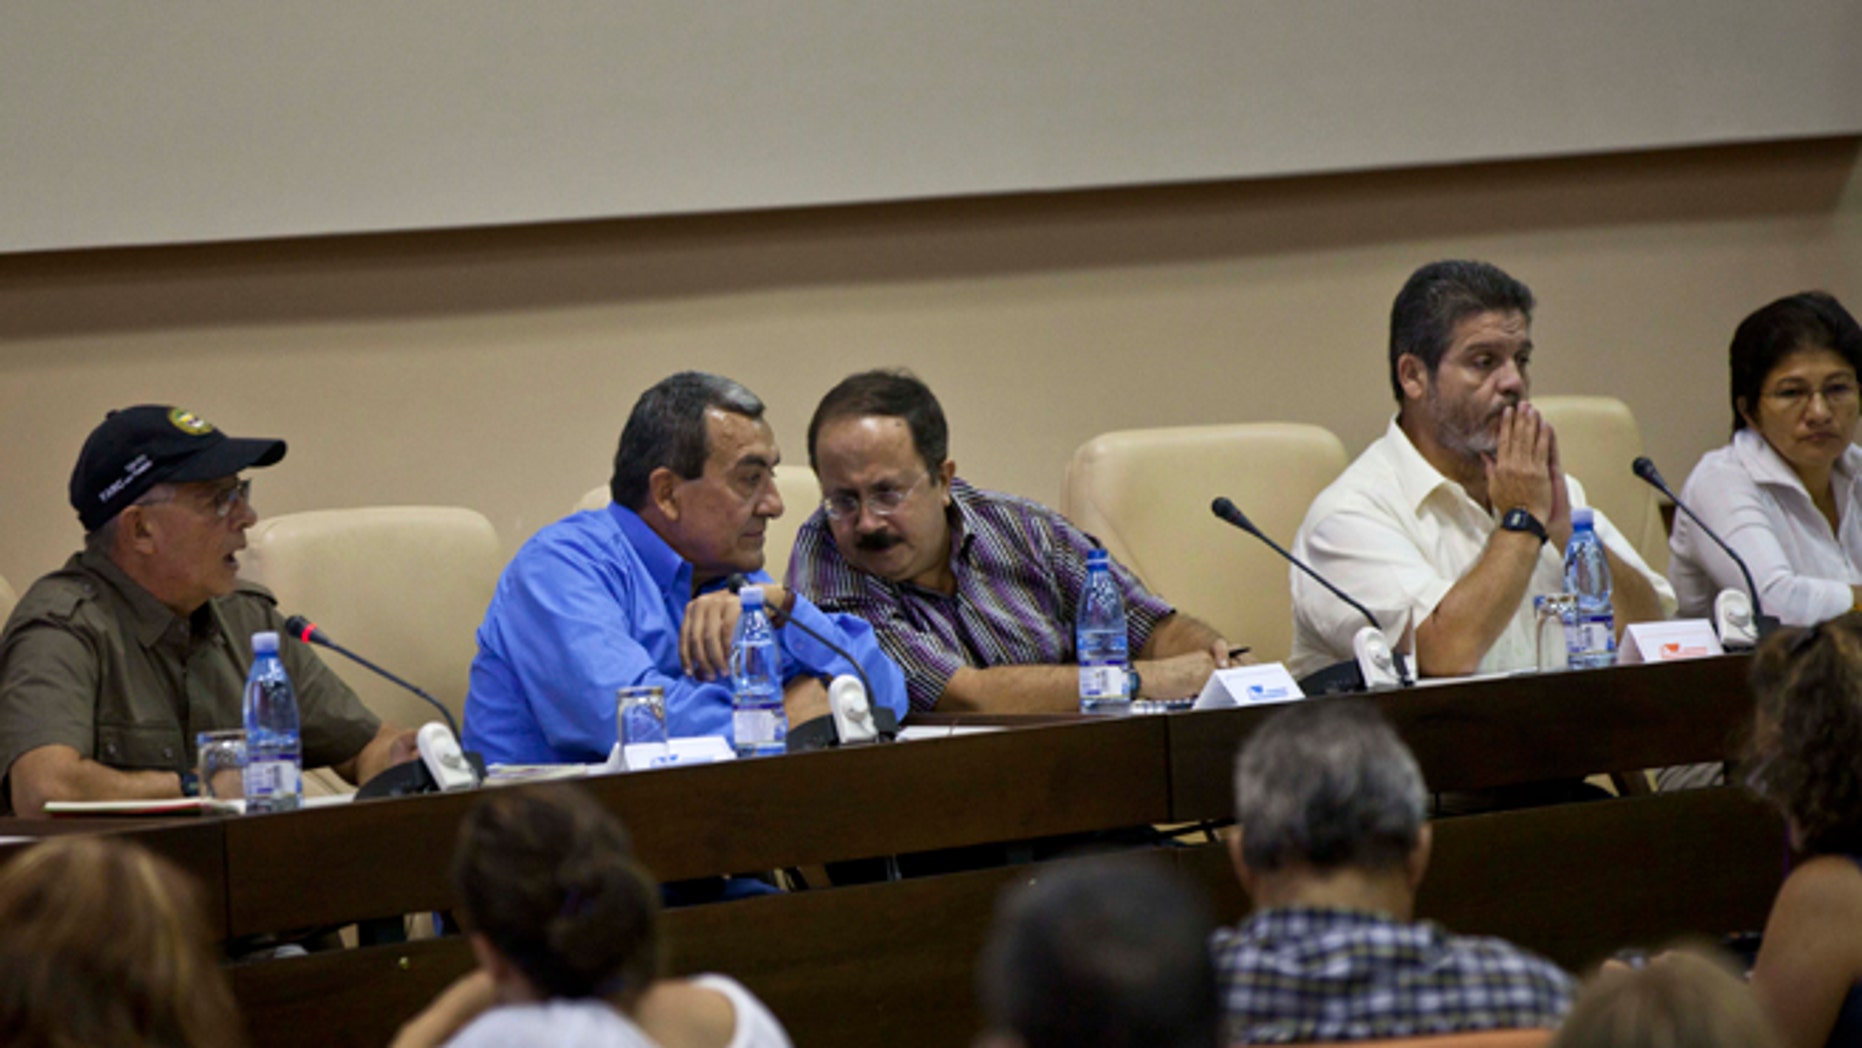 Mauricio Jaramillo, a spokesman and top leader of the Revolutionary Armed Forces of Colombia, or FARC, second from left, talks with FARC member Andres Paris during a press conference in Havana, Cuba, Thursday, Sept. 6, 2012. Colombia's main leftist rebel group announced two of its negotiators on Thursday for October peace talks in Norway, and said it hopes a high-ranking guerrilla imprisoned in the United States also can take part. (AP Photo/Ramon Espinosa)